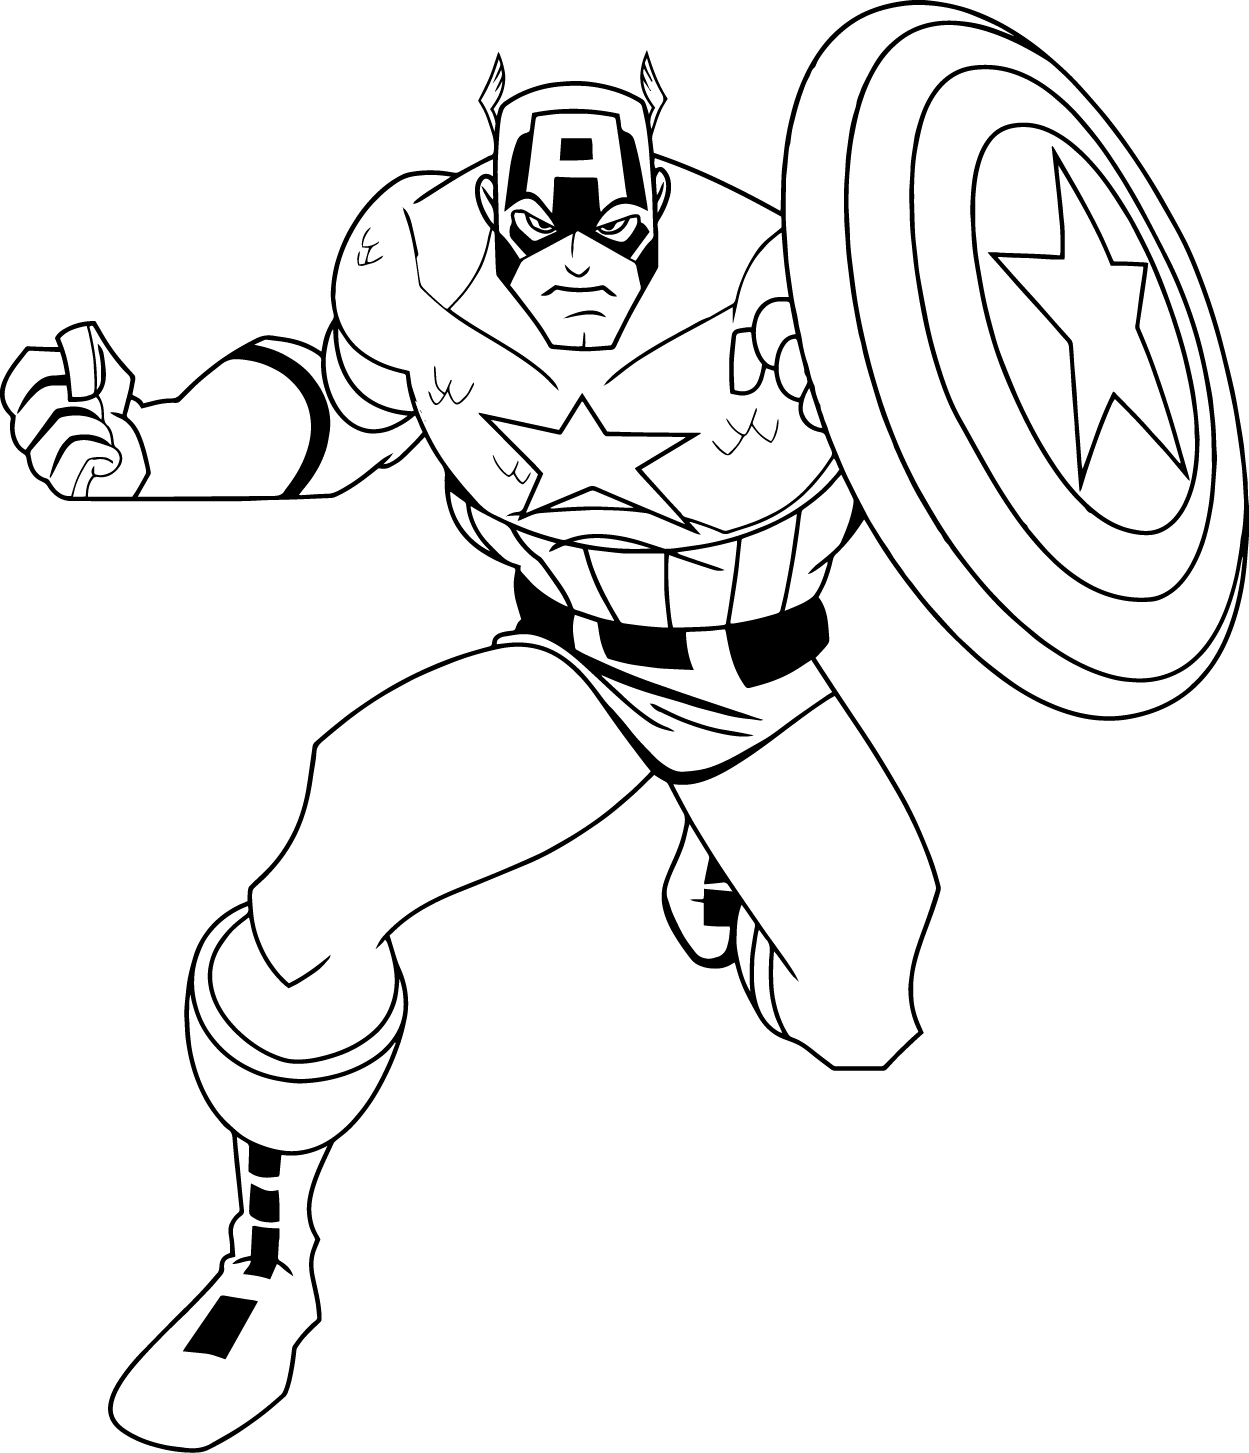 captain america coloring pictures free printable captain america coloring pages for kids america pictures coloring captain